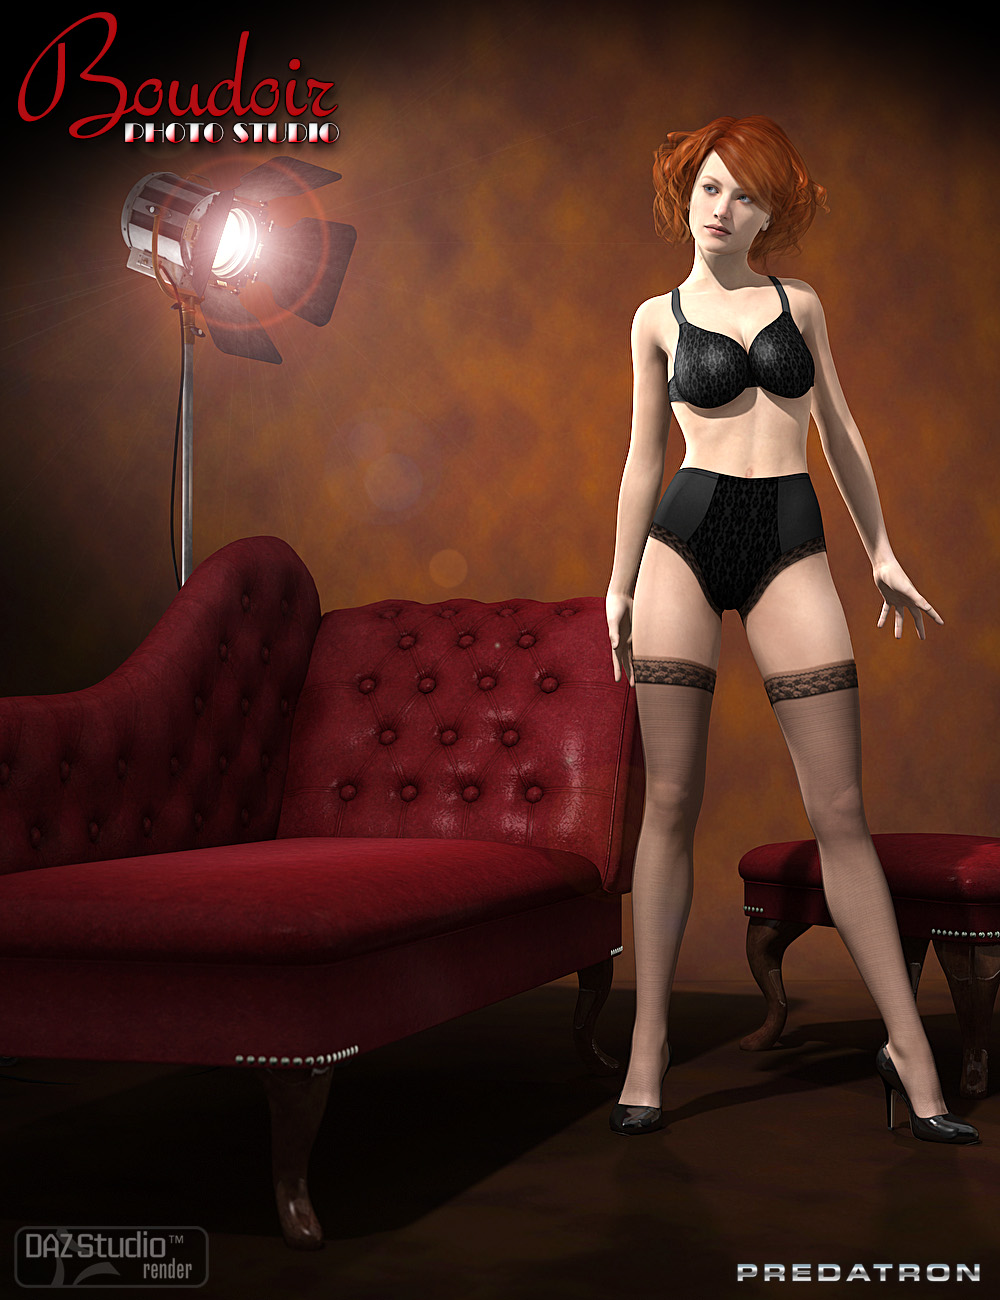 Boudoir Photo Studio and Lights by: DianePredatron, 3D Models by Daz 3D